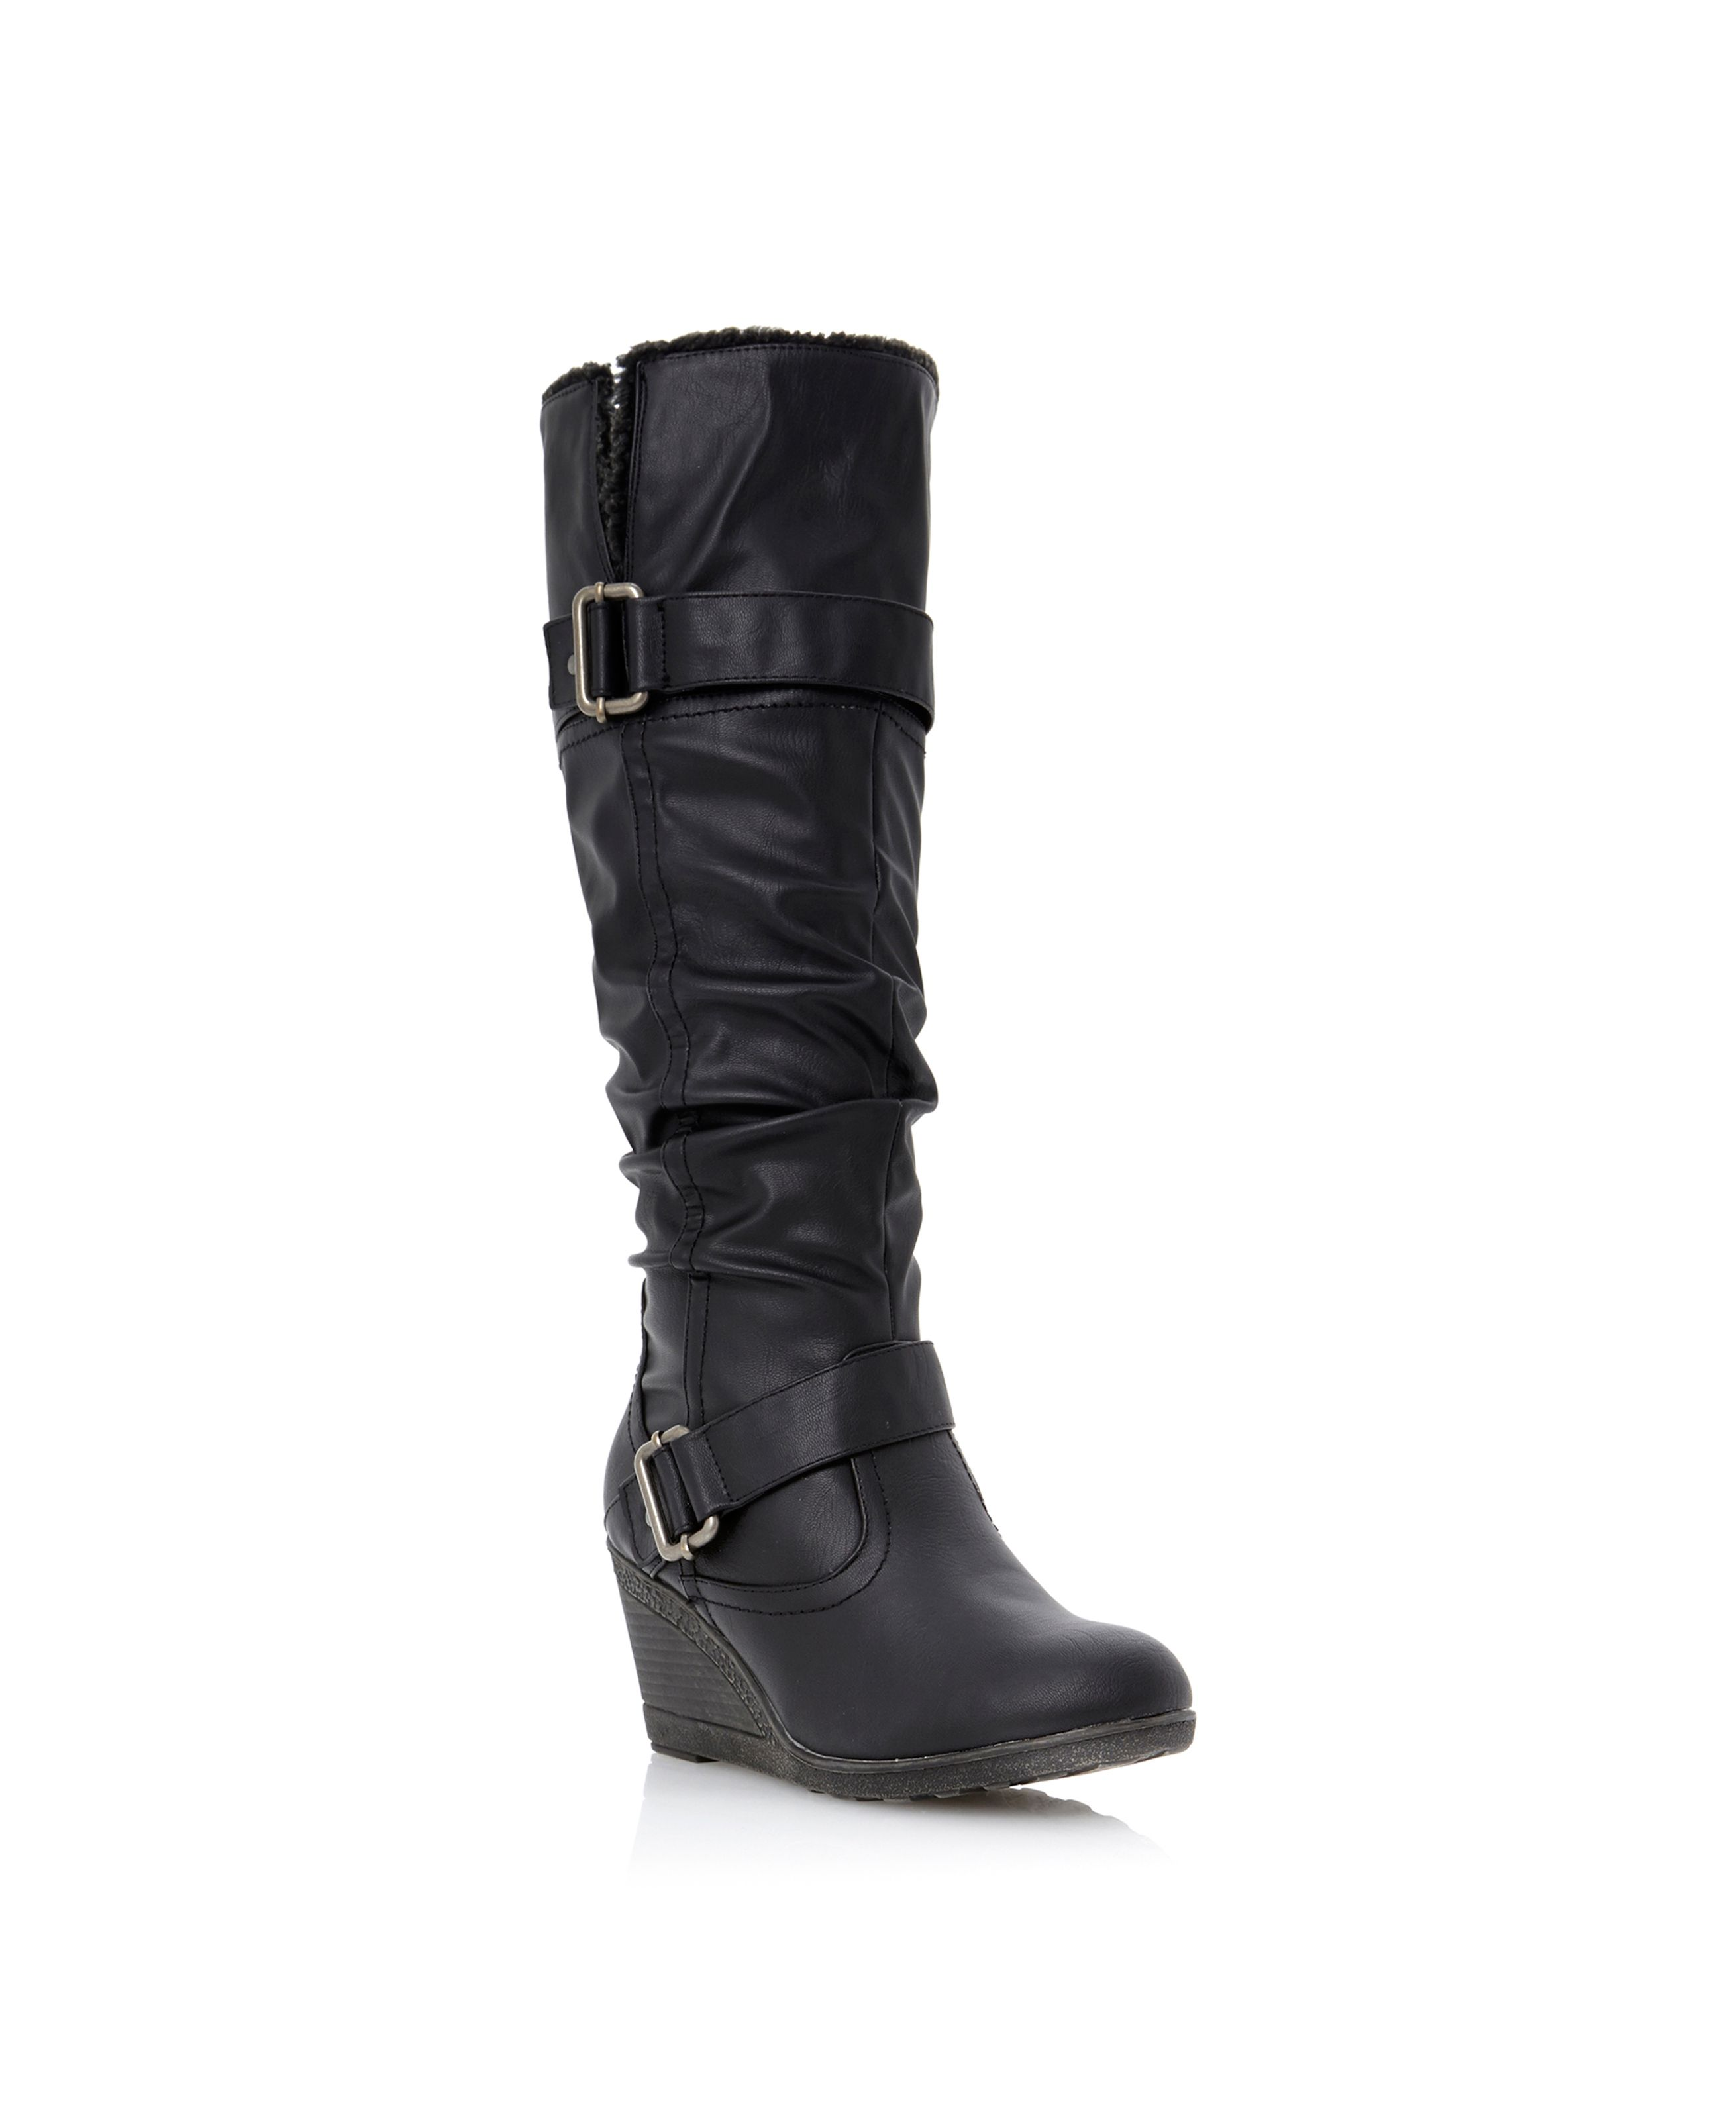 Tyzon-wedge shearlinglined boots